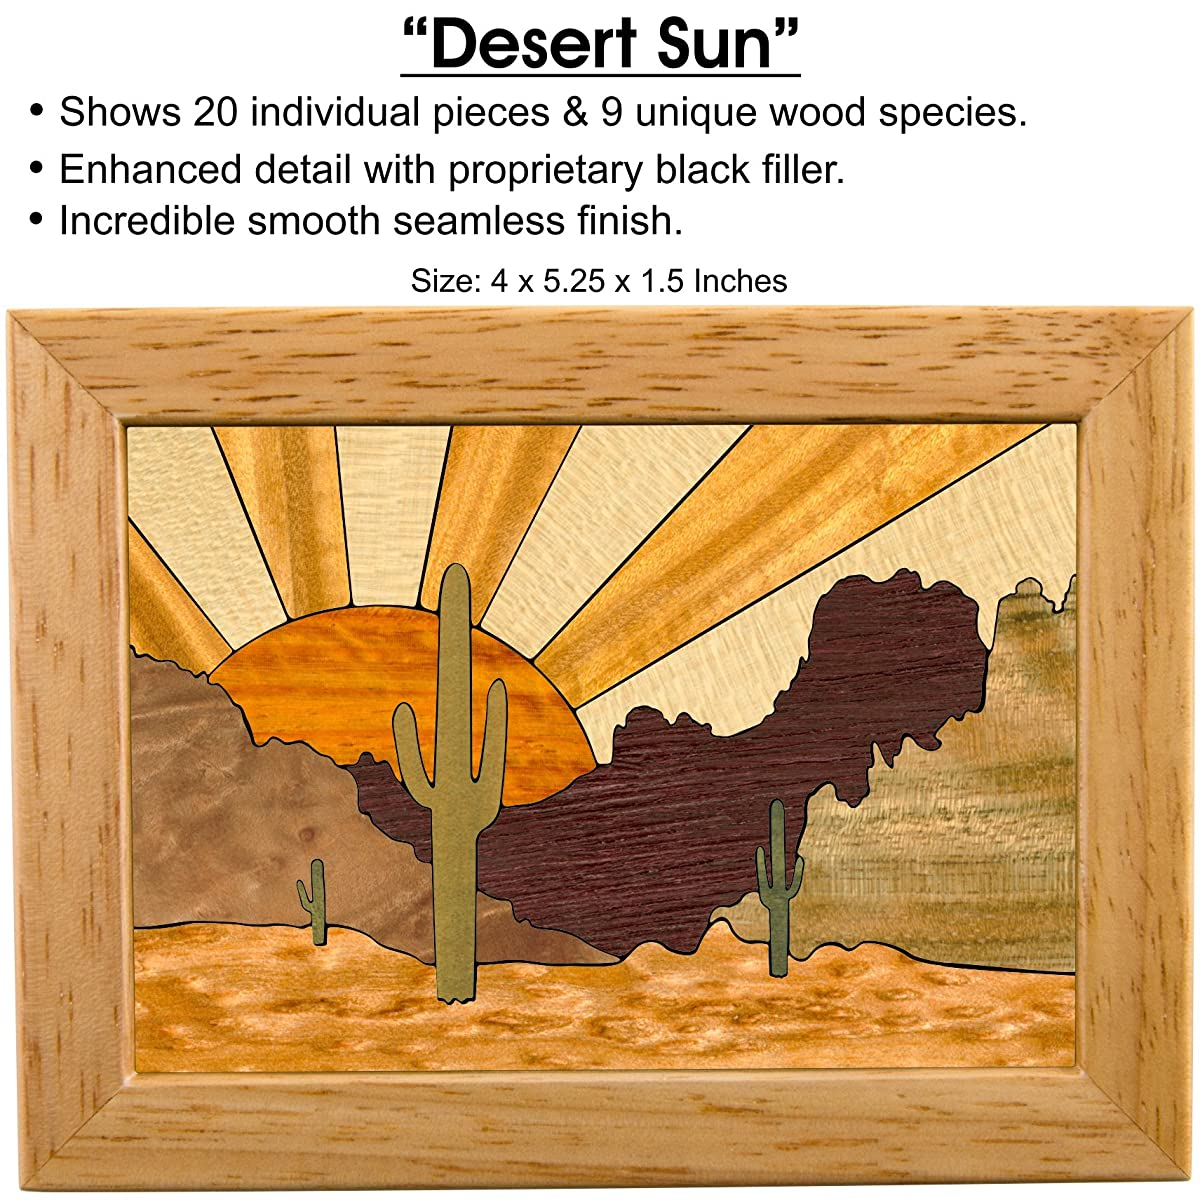 Desert Sunset Wood Art Jewelry Box & Gift - Handmade USA - Unmatched Quality - Unique, No Two are the Same - Original Work of Wood Art (#4118 Desert Sunset 4x5x1.5)